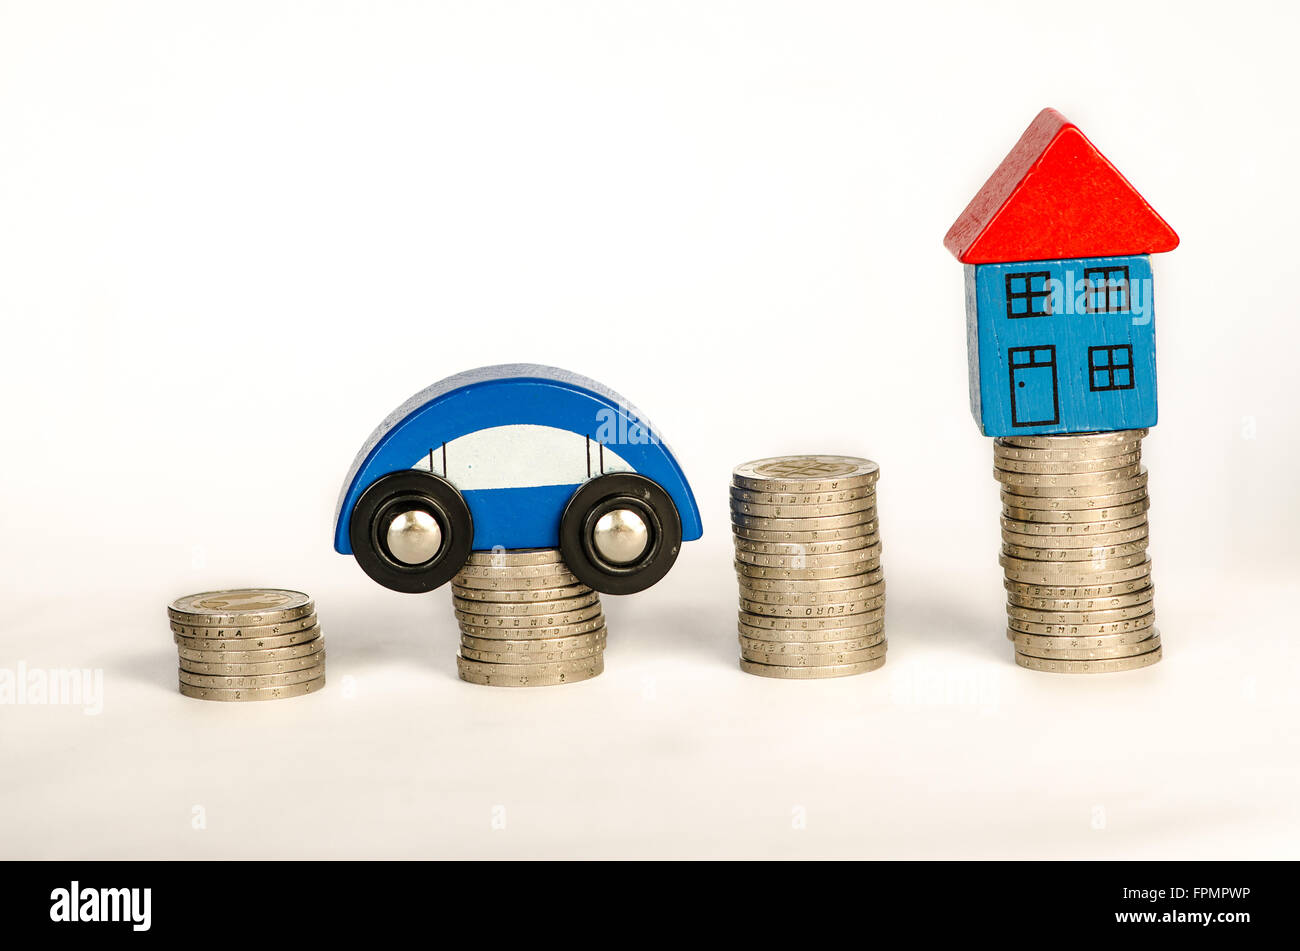 pile of coins, house and car detail image - Stock Image